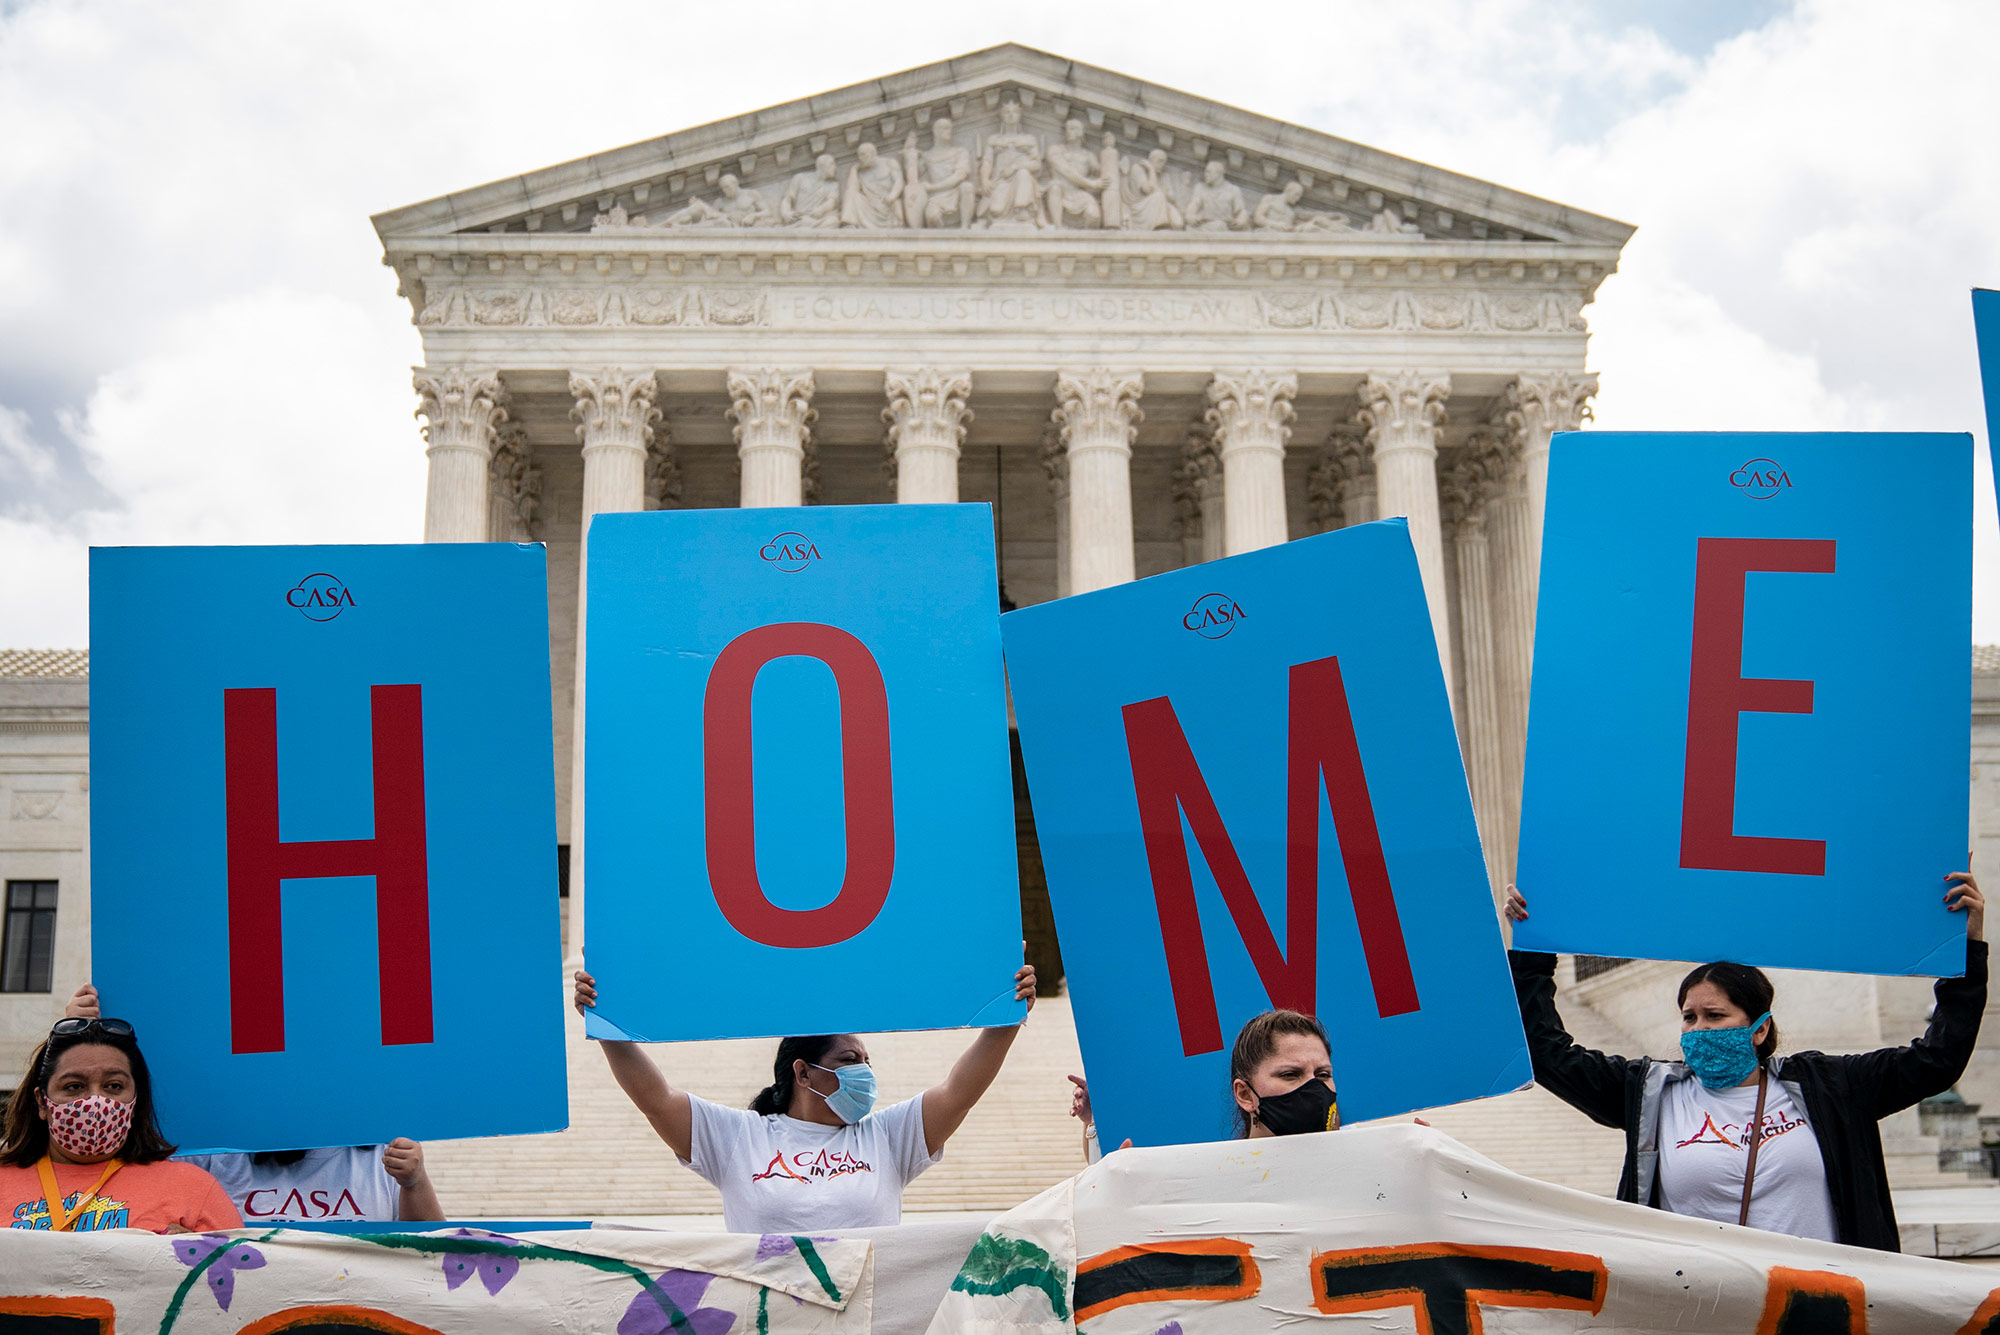 "Photo from Washington, DC on June 18th. Pictured are DACA recipients and their supporters rallying outside the U.S. Supreme Court on June 18, 2020 in Washington, DC. They hold a blue signs with red letters that read ""HOME"" On Thursday morning, the Supreme Court, in a 5-4 decision, denied the Trump administration's attempt to end DACA, the Deferred Action for Childhood Arrivals program."